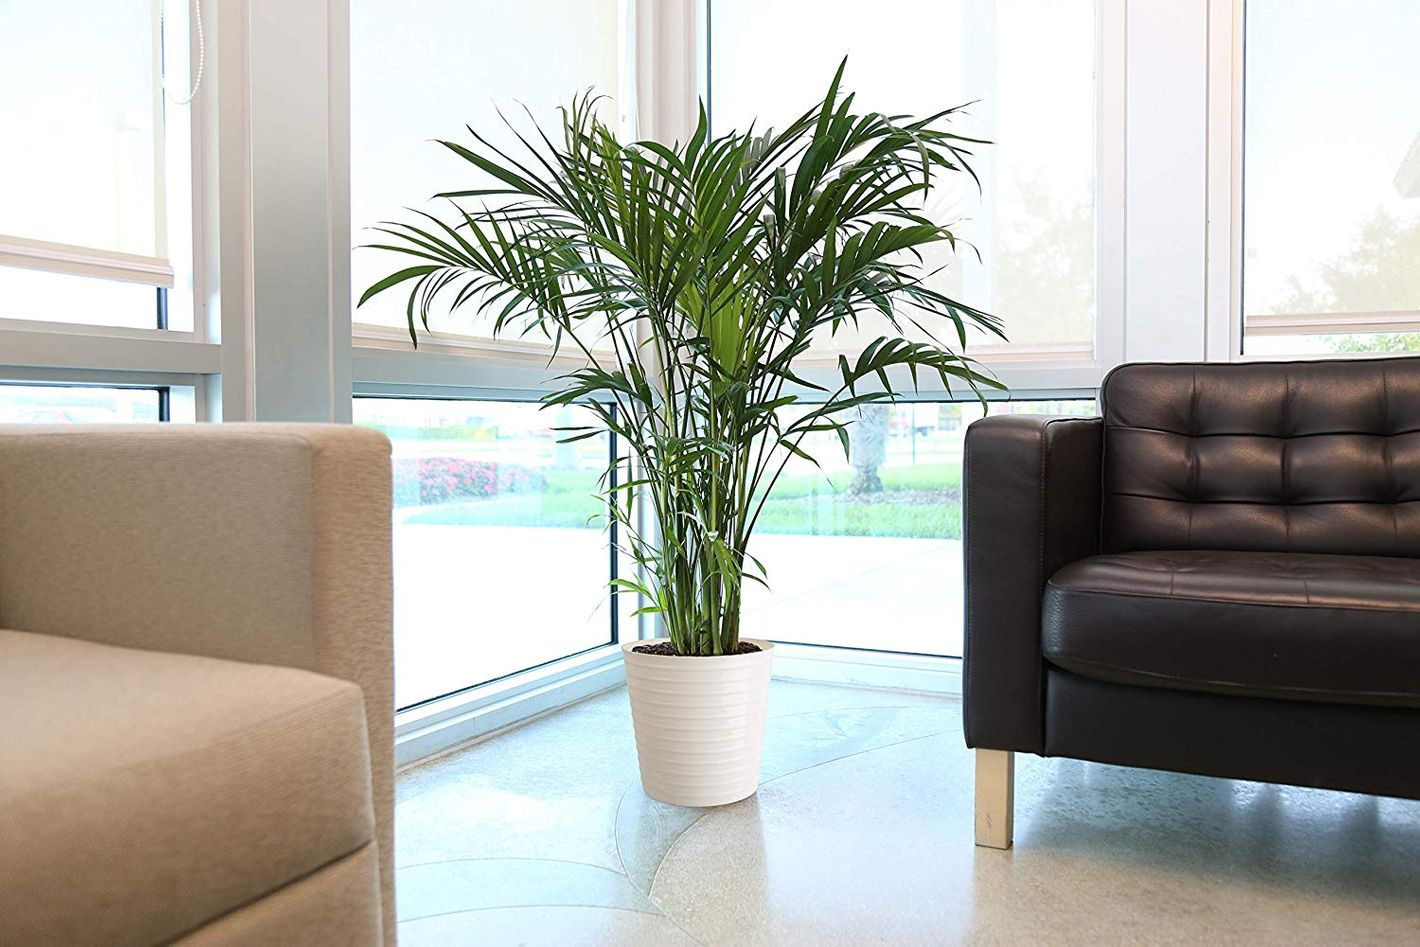 Costa Farms Neanthe Bella Parlor Palm, 14 to 16-Inches Tall, in White-Natural Lightweight Décor Planter